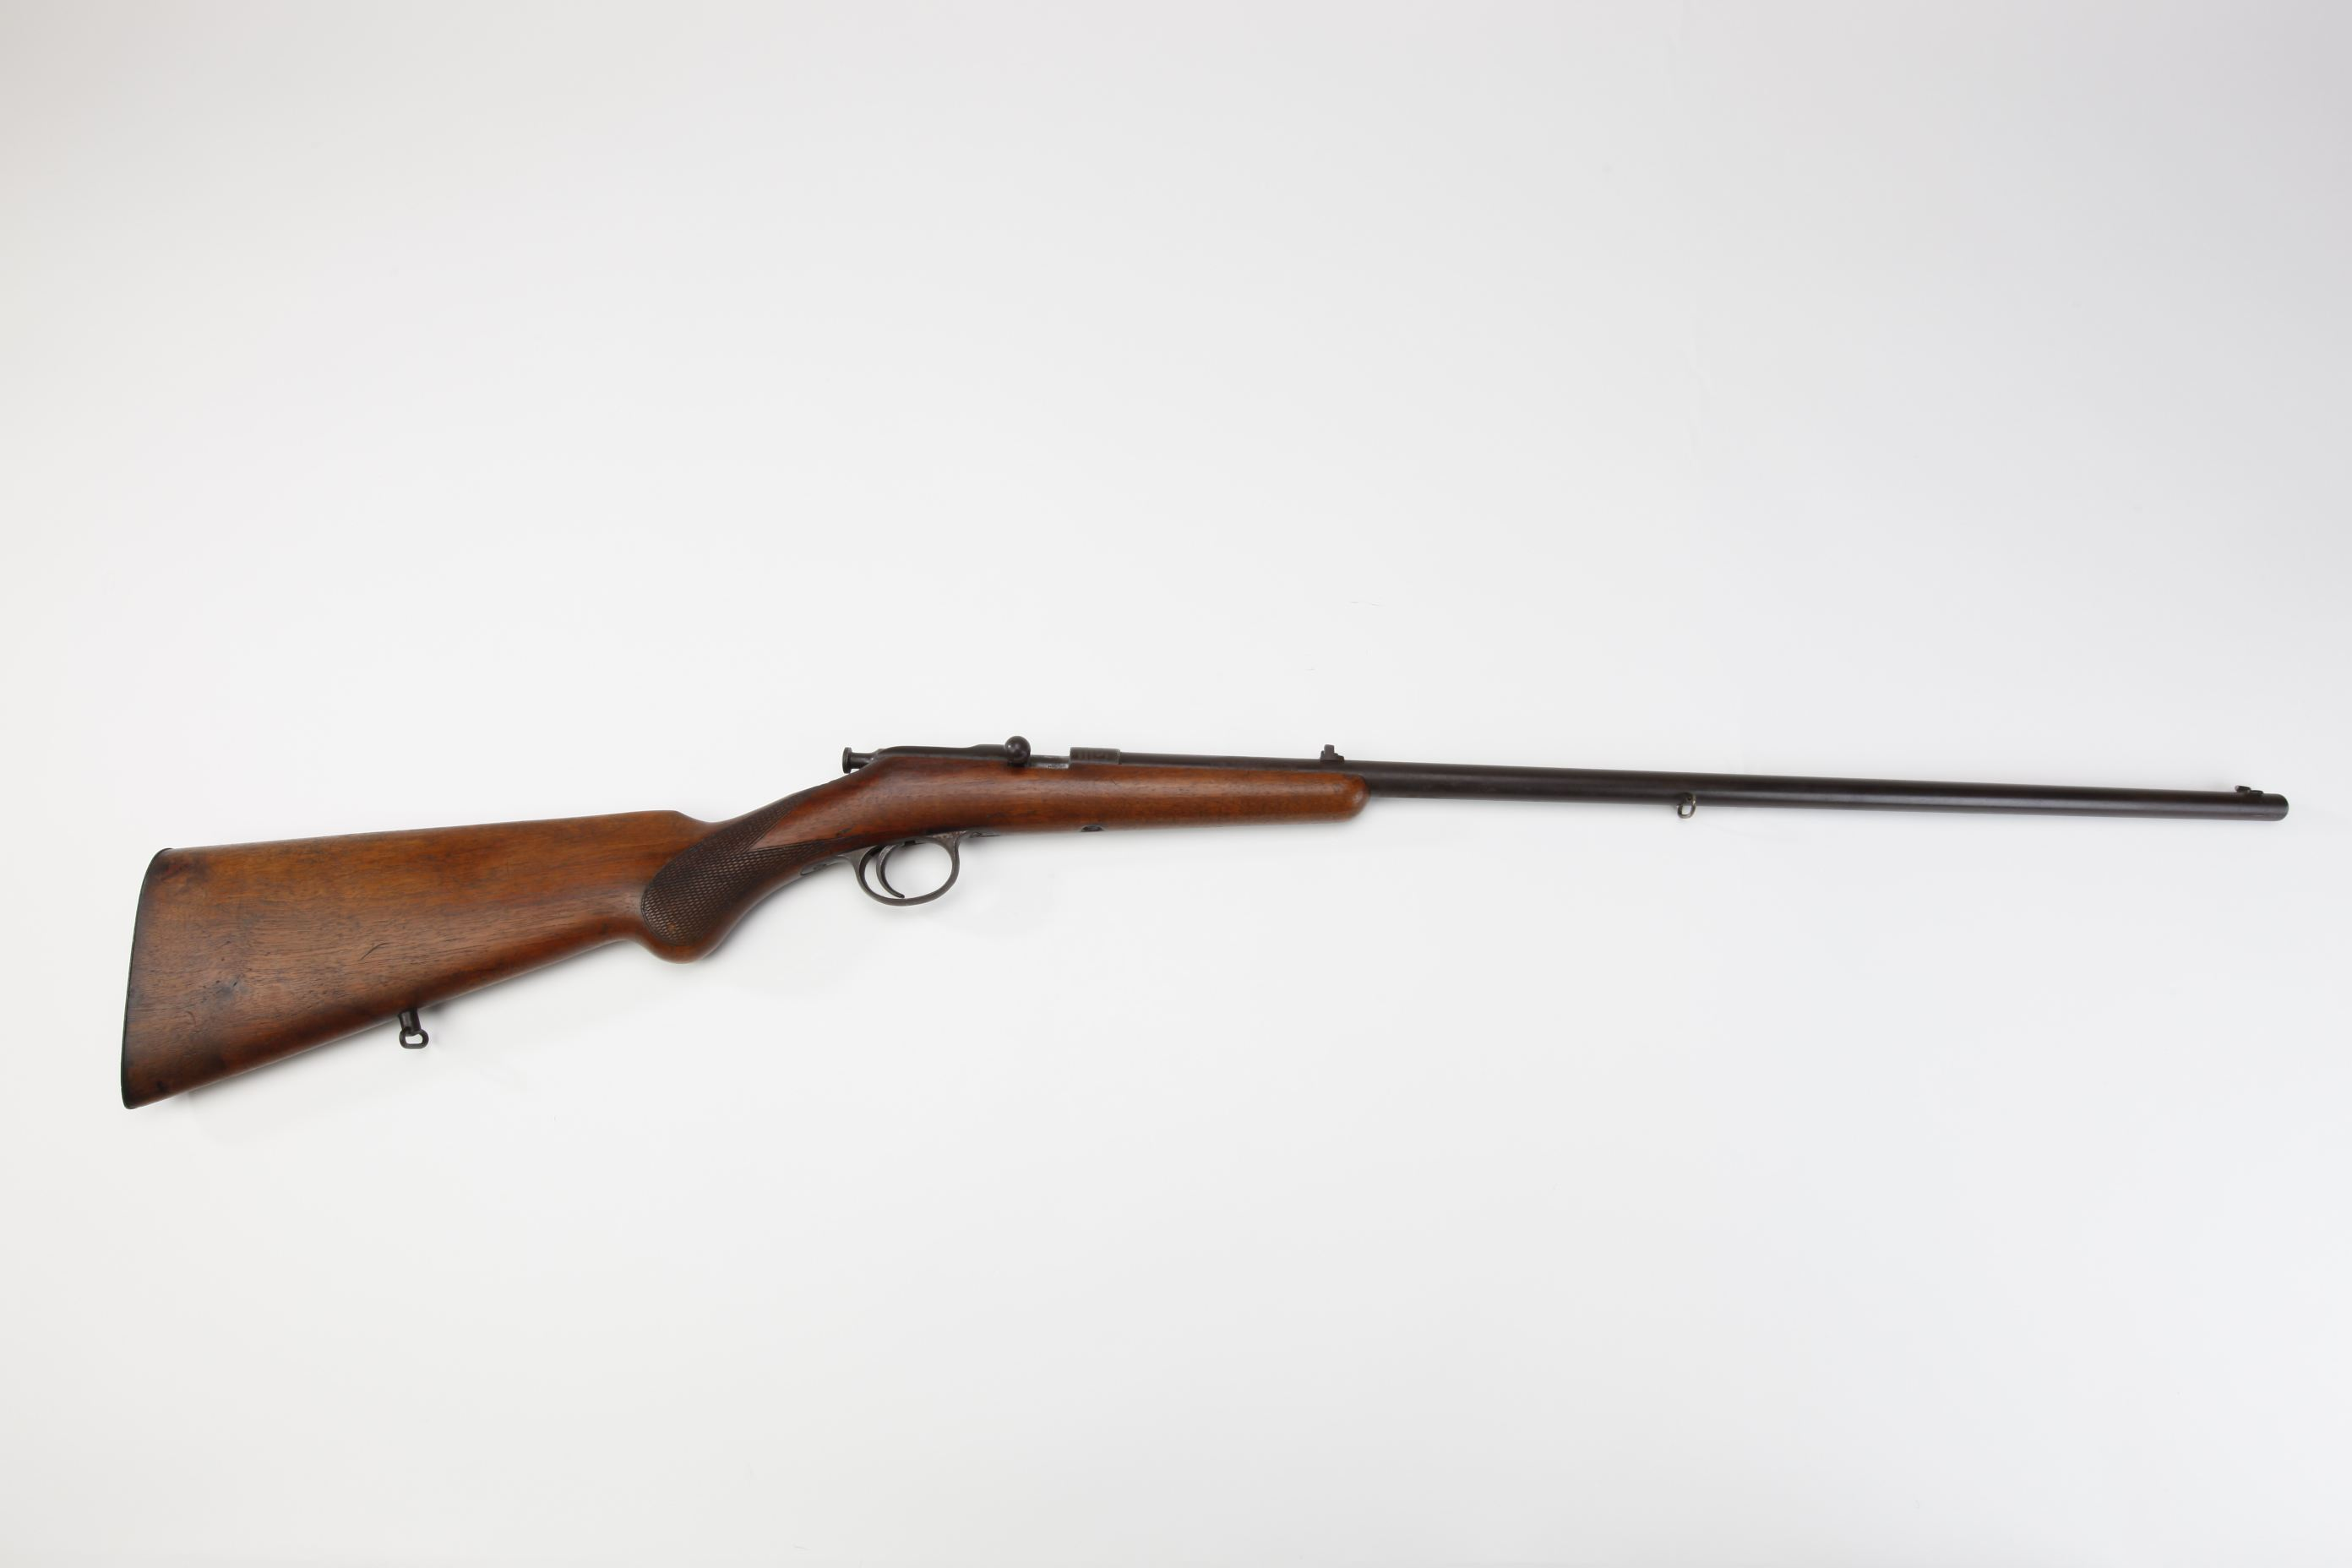 Simpson Bolt Action Rifle